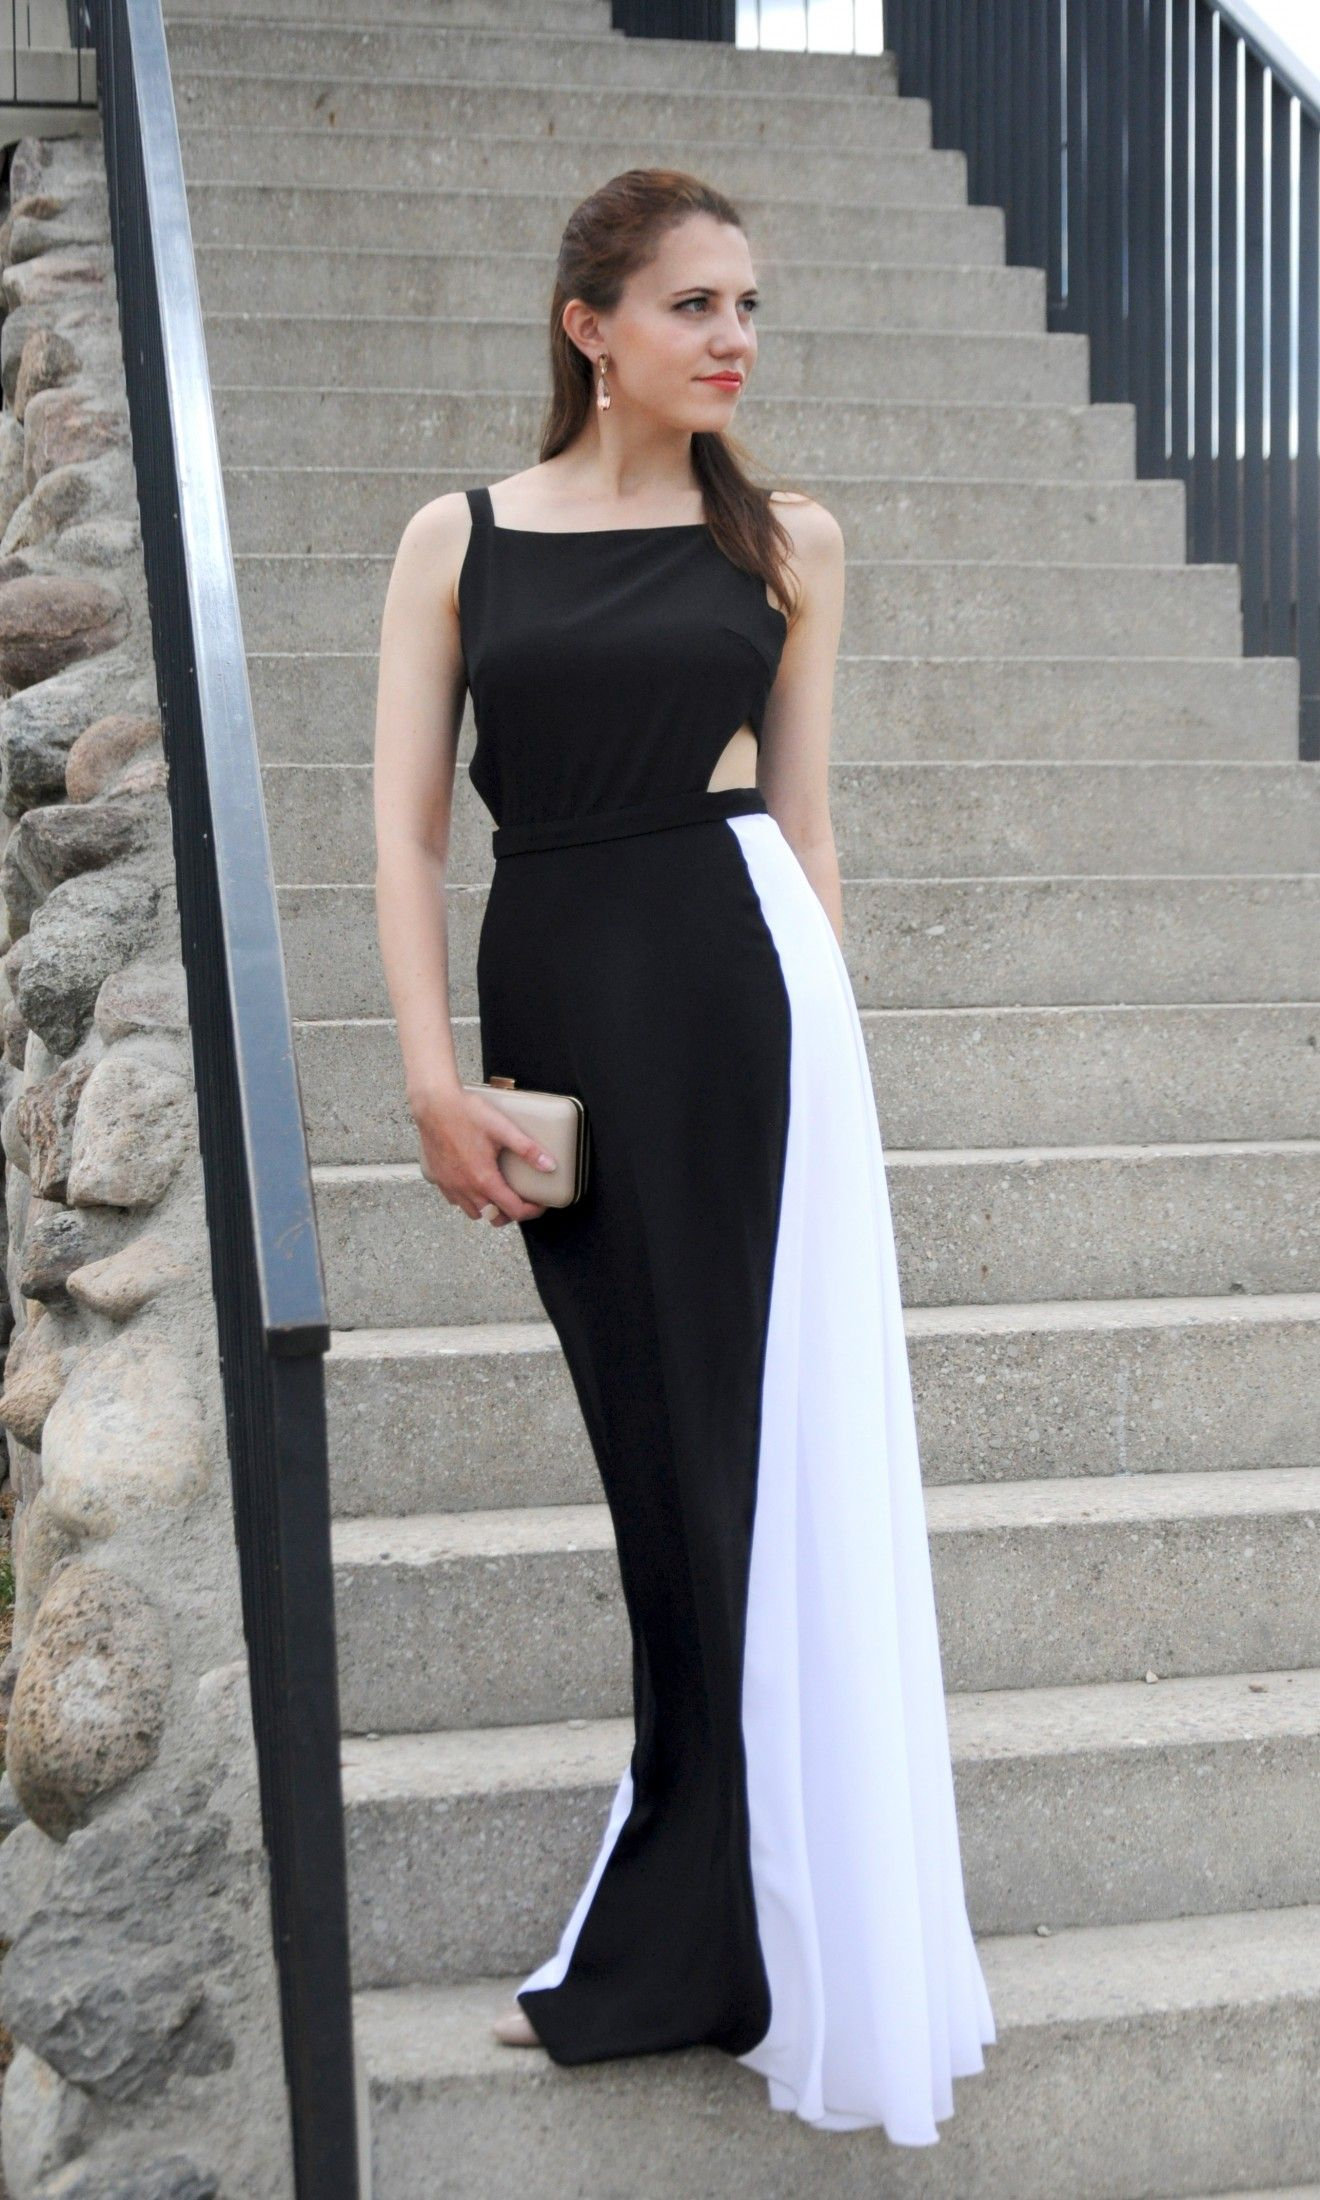 Black and white dresses for wedding guests  Slimming black and white maxi  great choice for a wedding guest